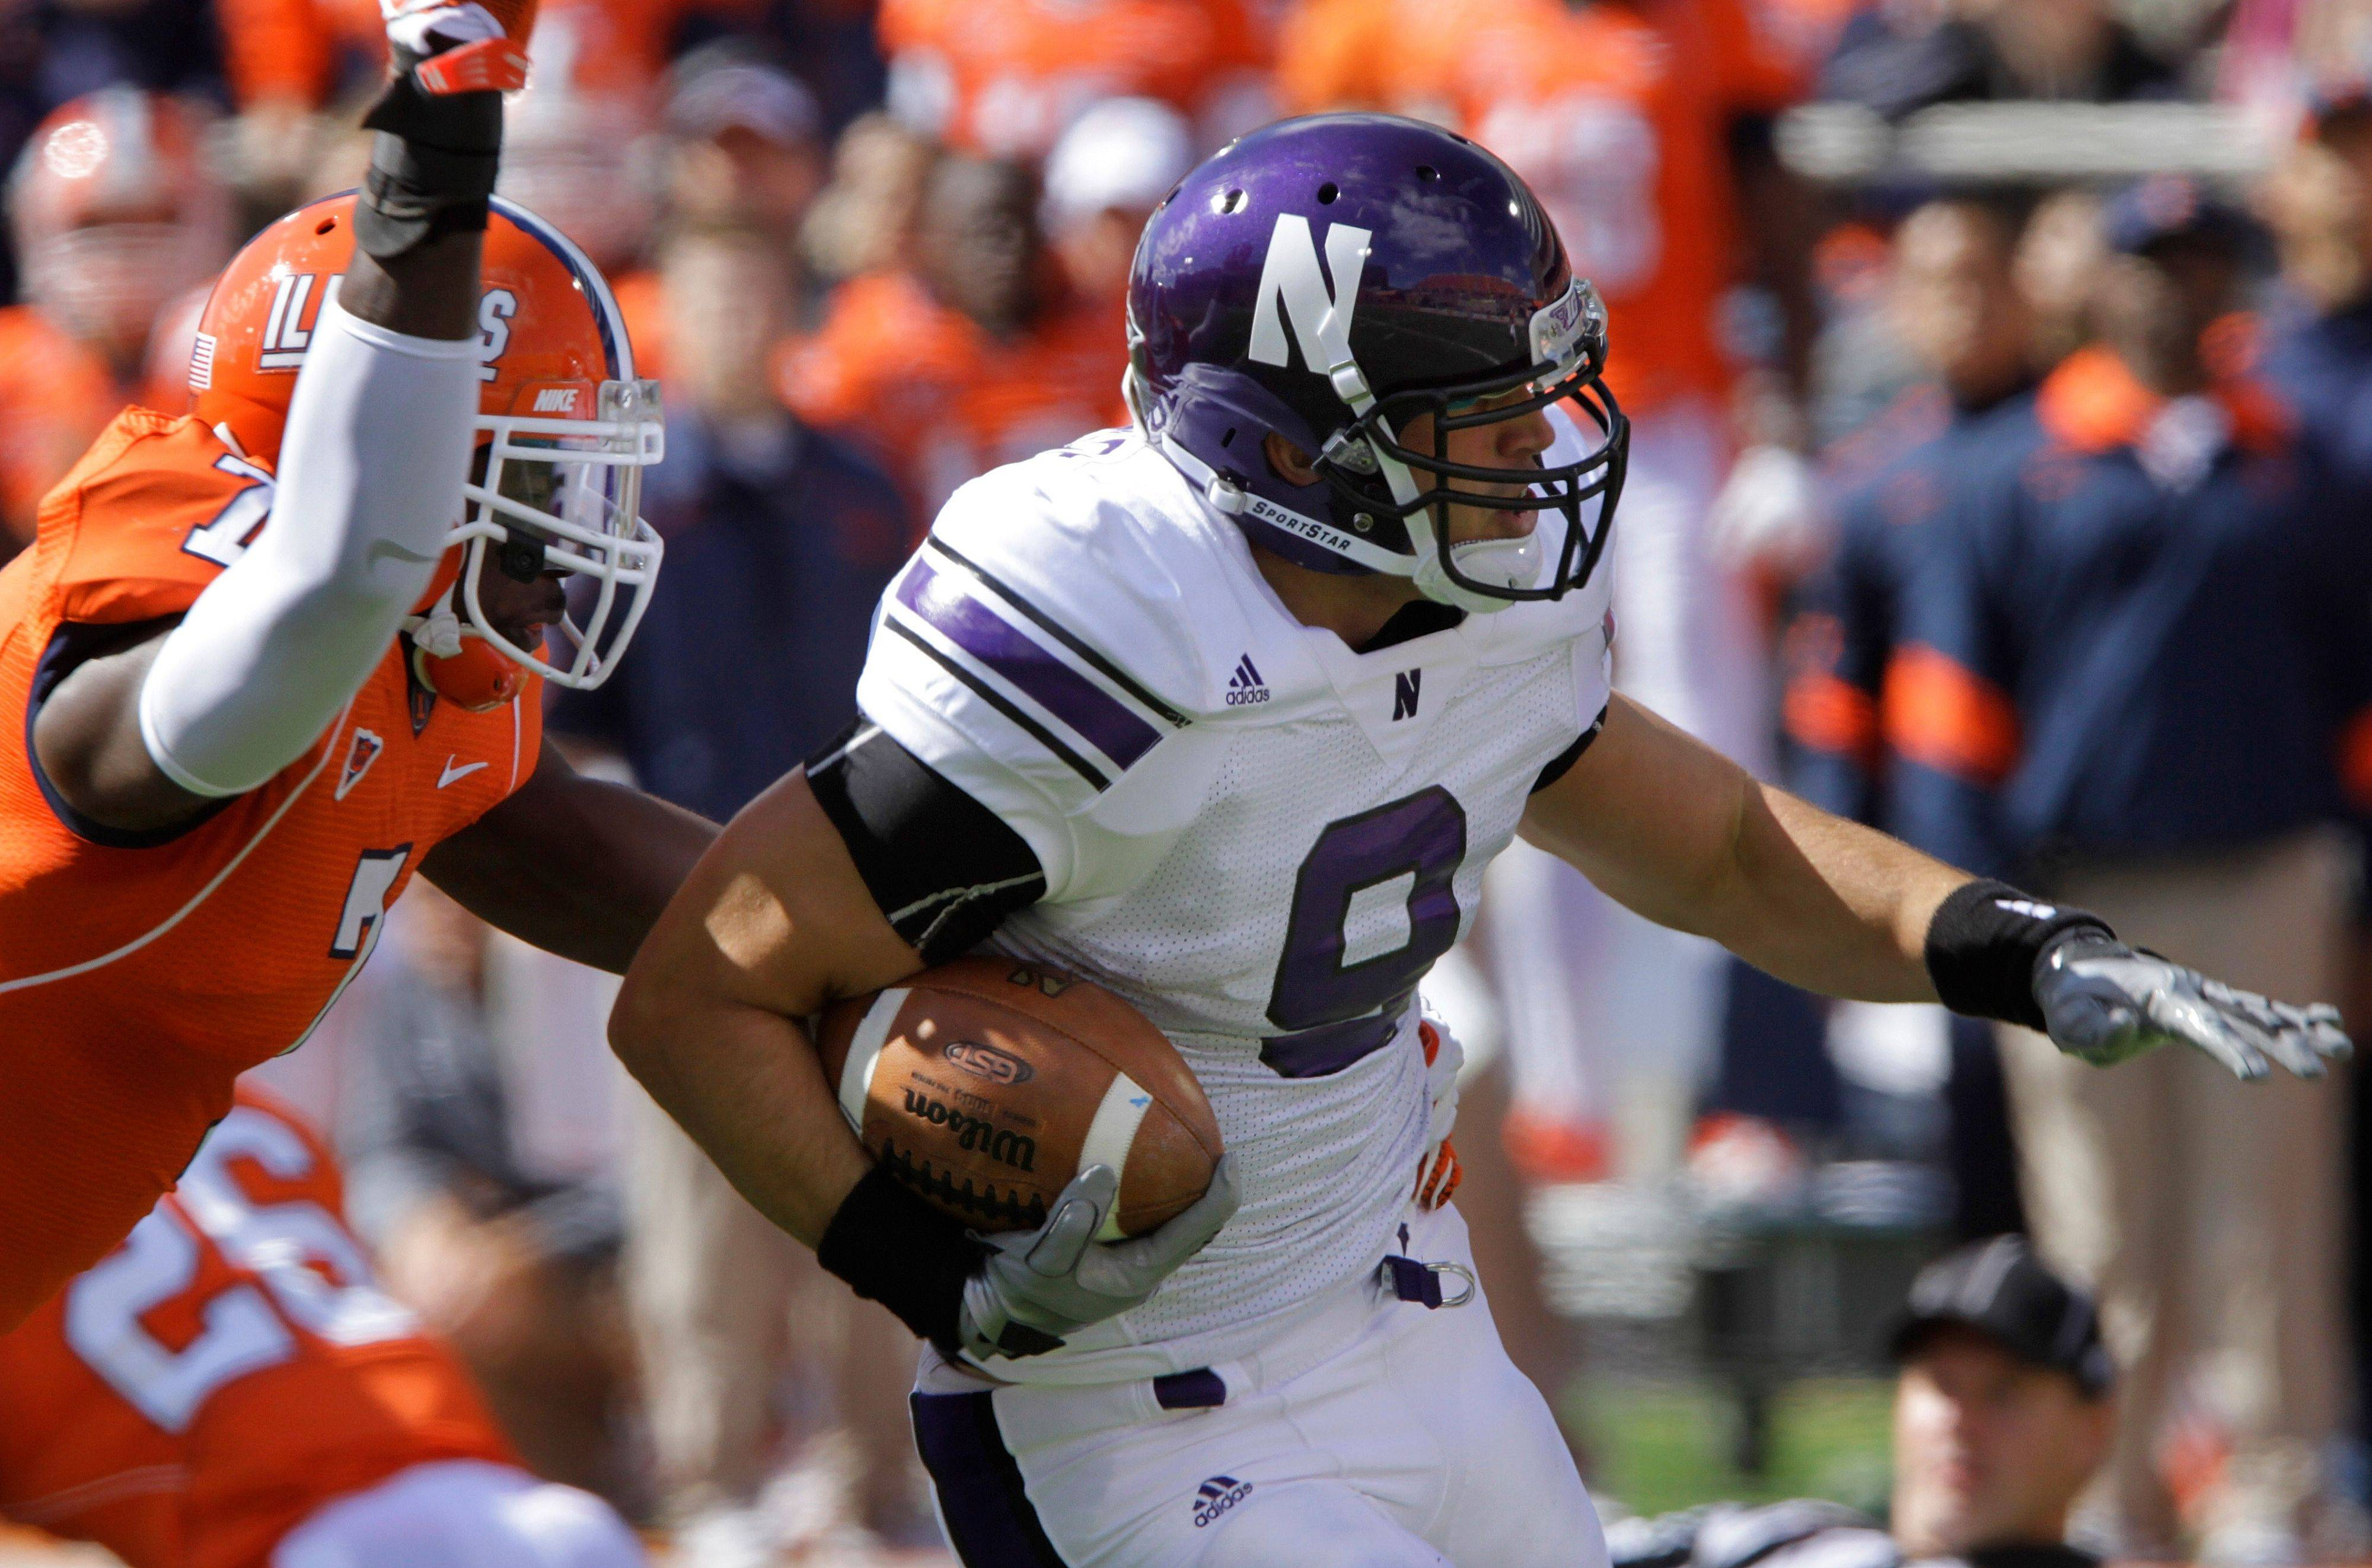 Northwestern tight end Drake Dunsmore holds onto a pass as Illinois defensive back Supo Sanni defends during the first half Saturday in Champaign.